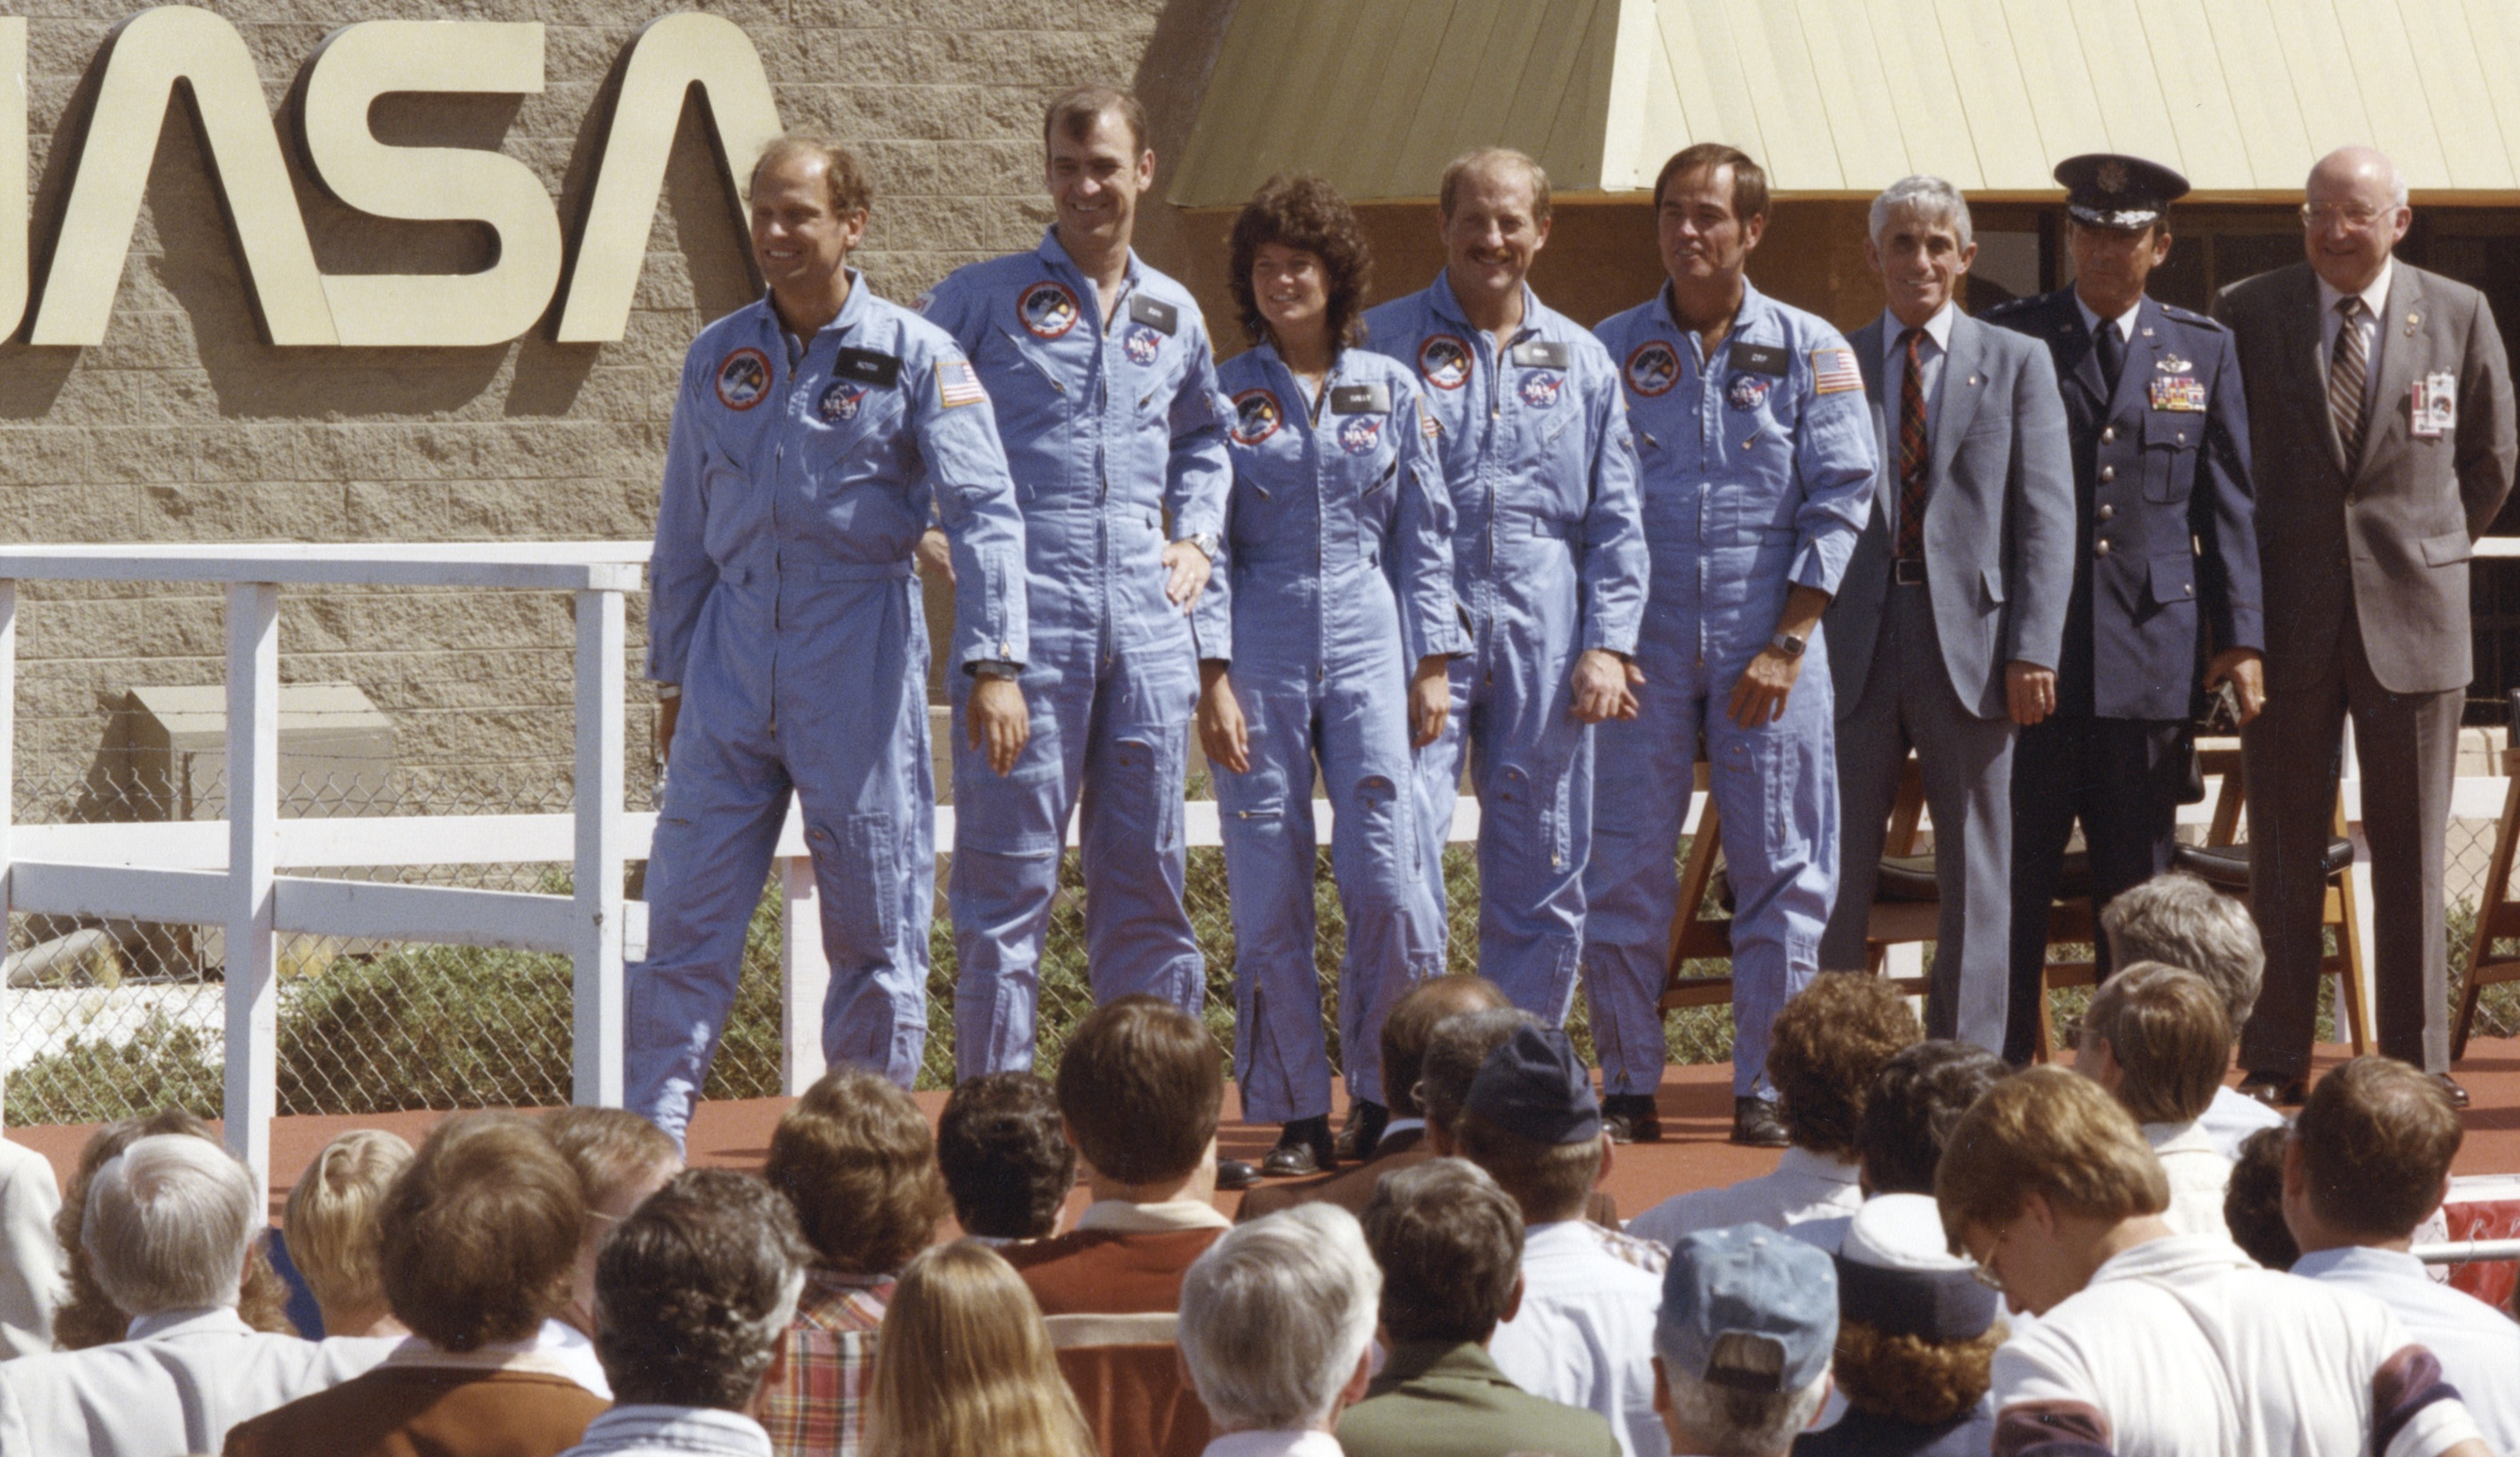 the challenger space shuttle mission - photo #29